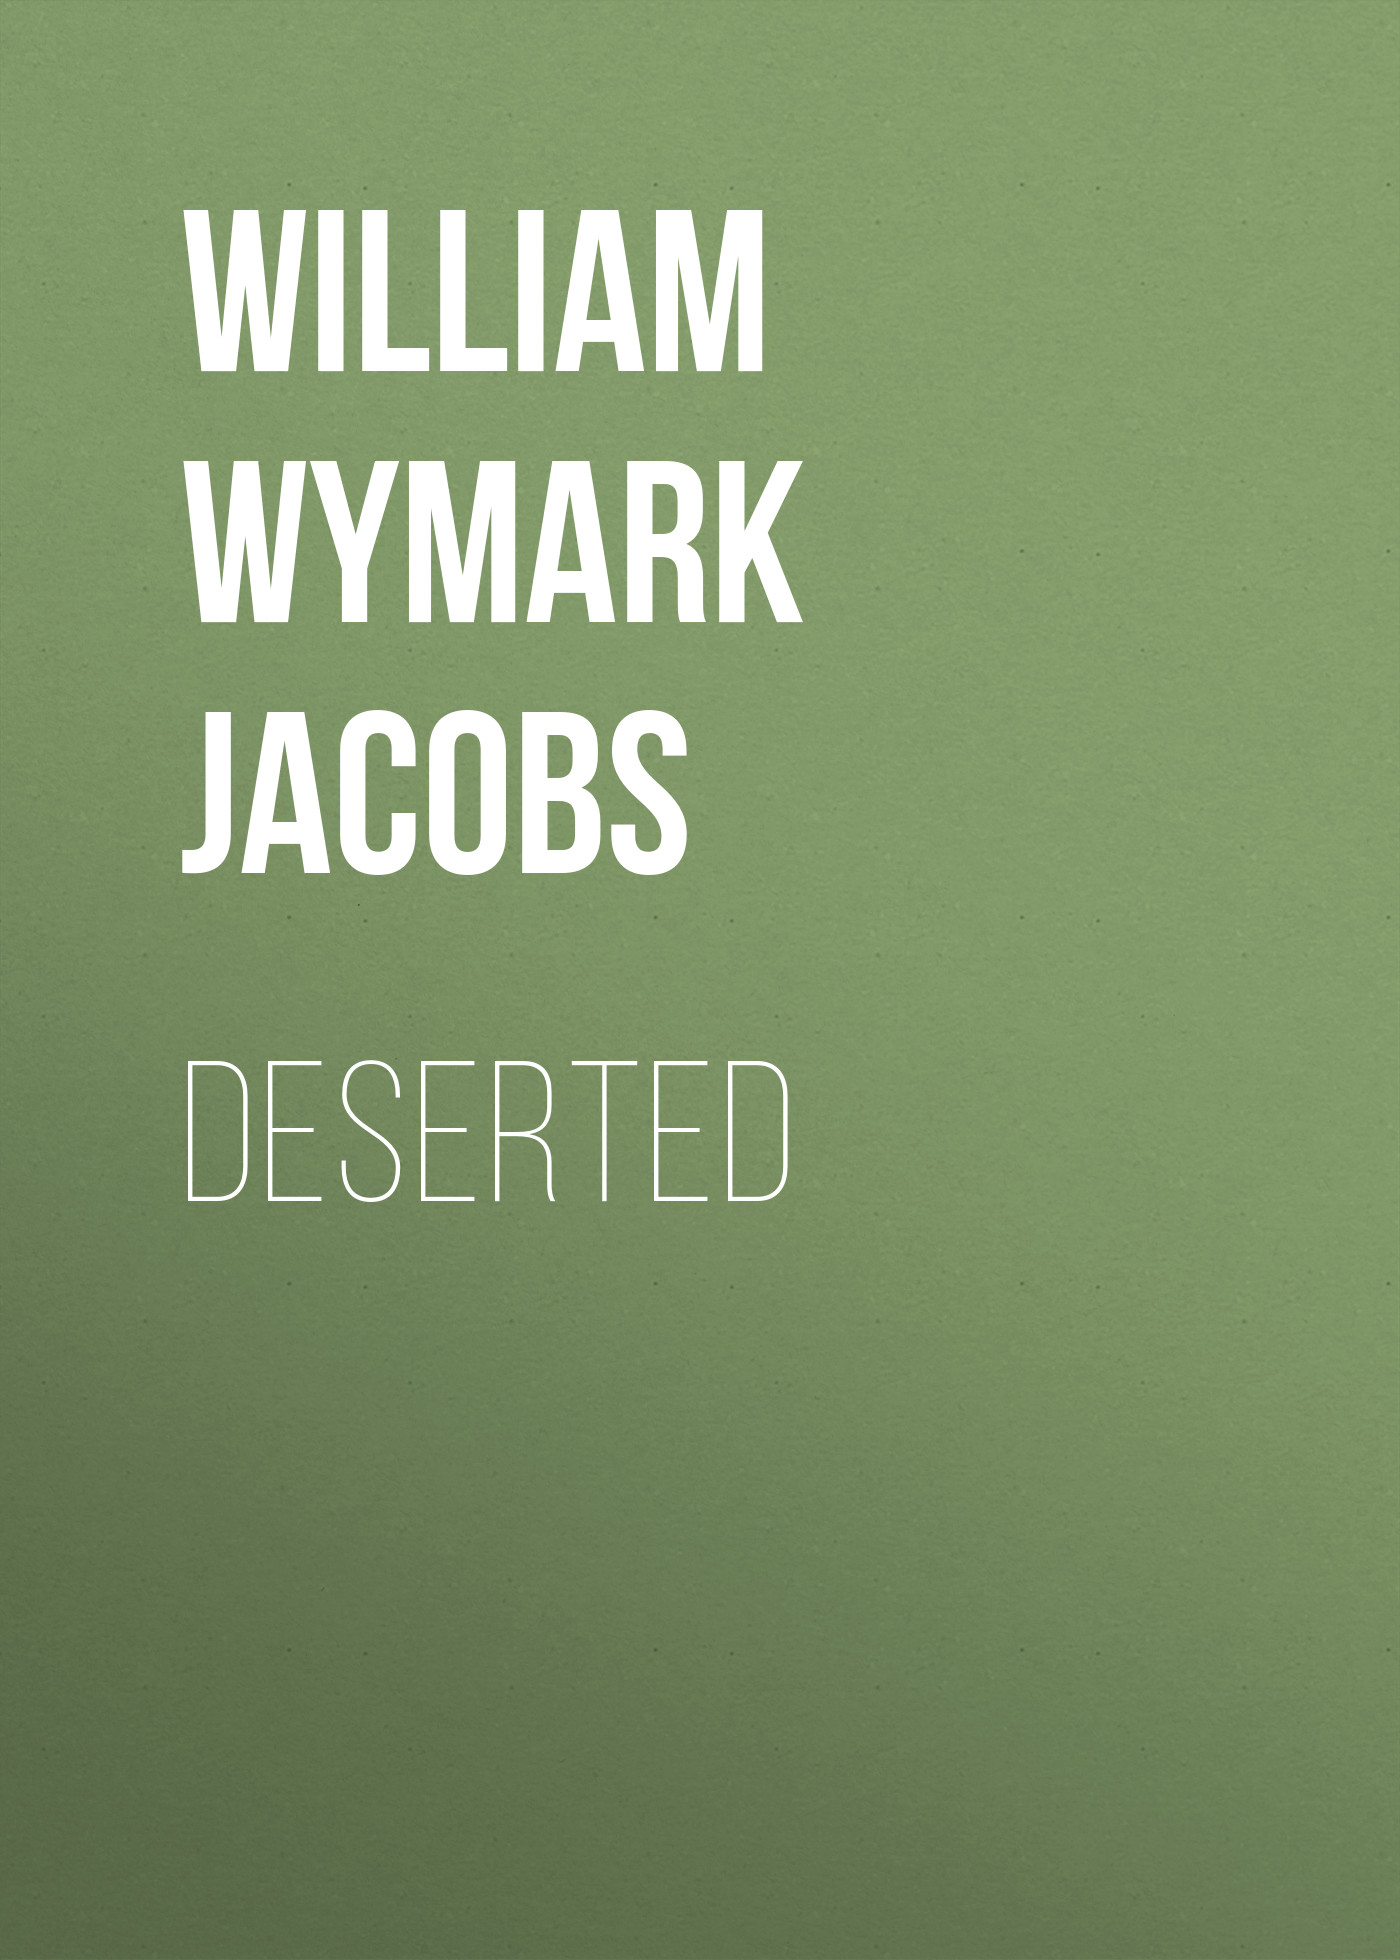 William Wymark Jacobs Deserted